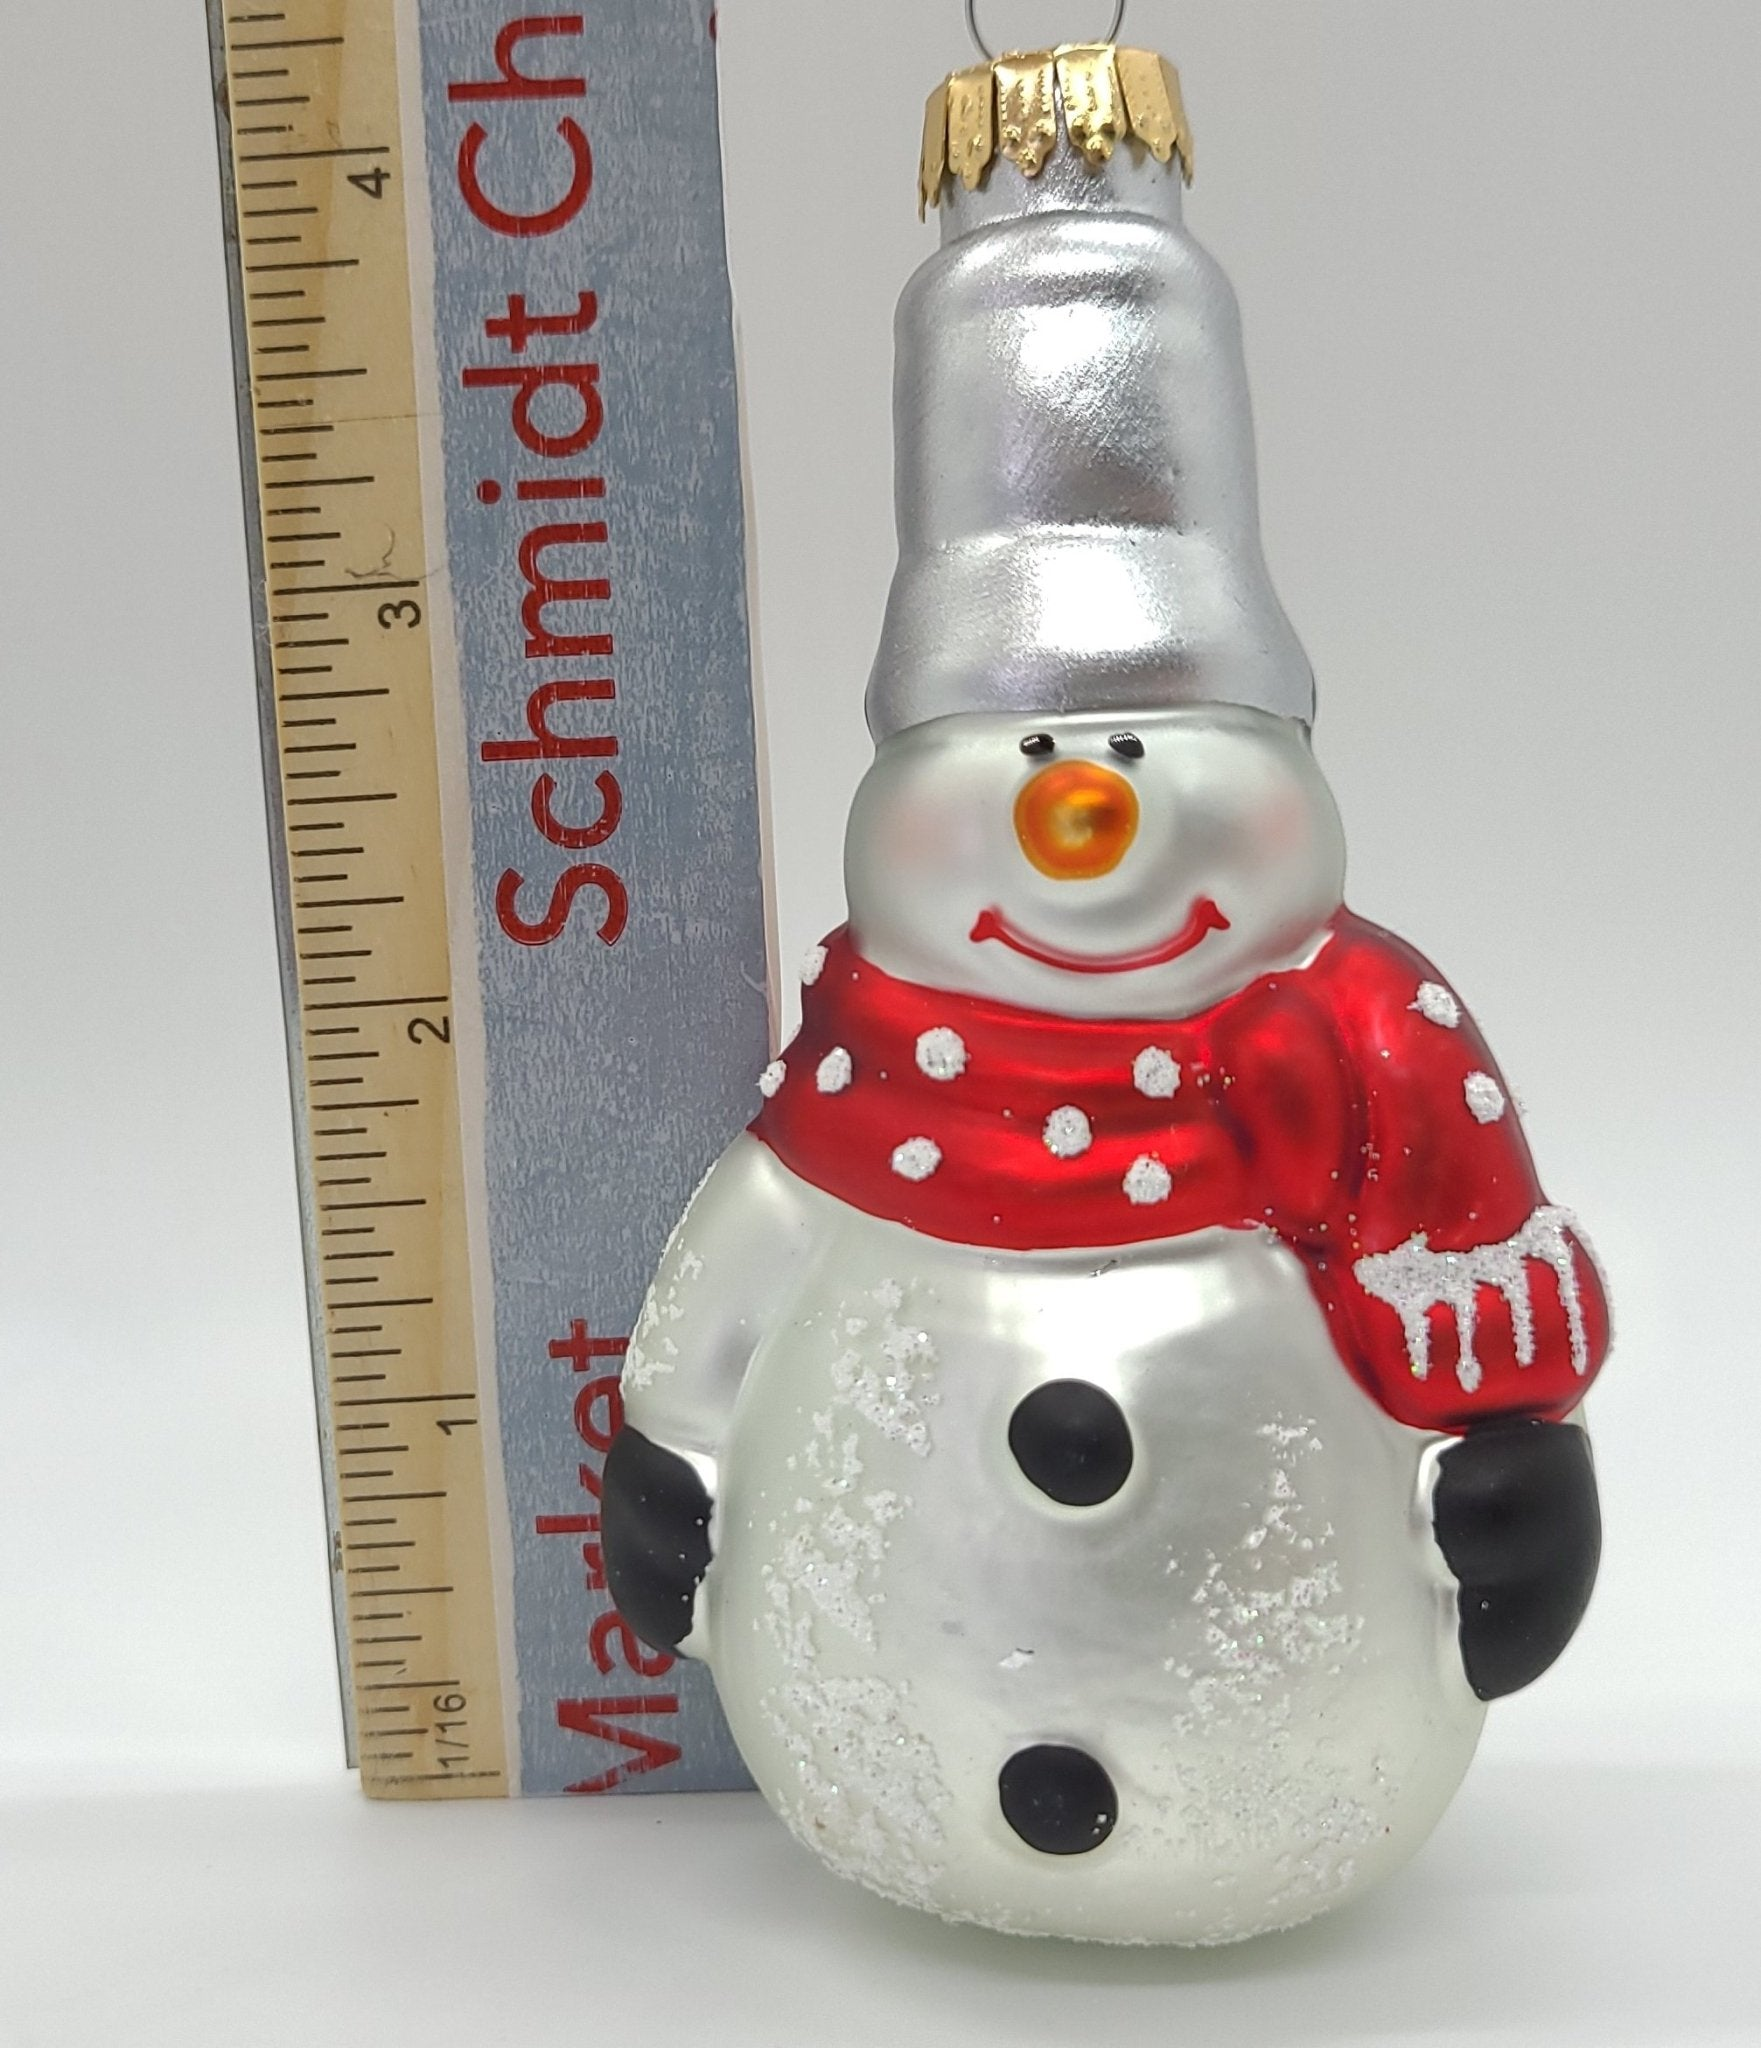 Conehead Snowman Glass Ornament - Schmidt Christmas Market Christmas Decoration